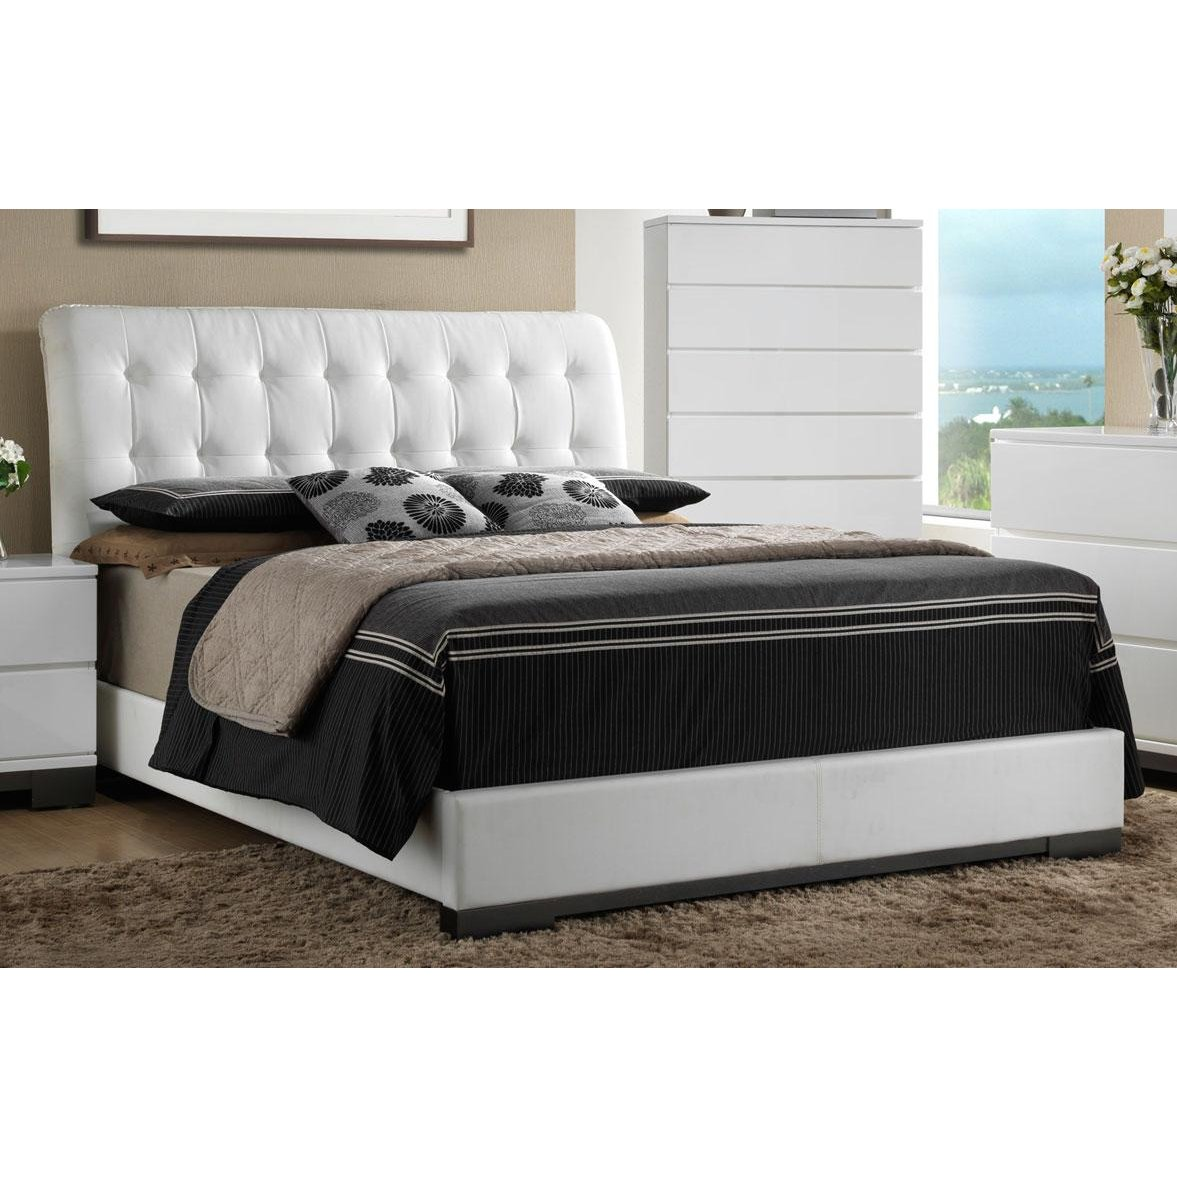 Rc Willey Bedroom Furniture Contemporary White Queen Upholstered Bed Avery Rc